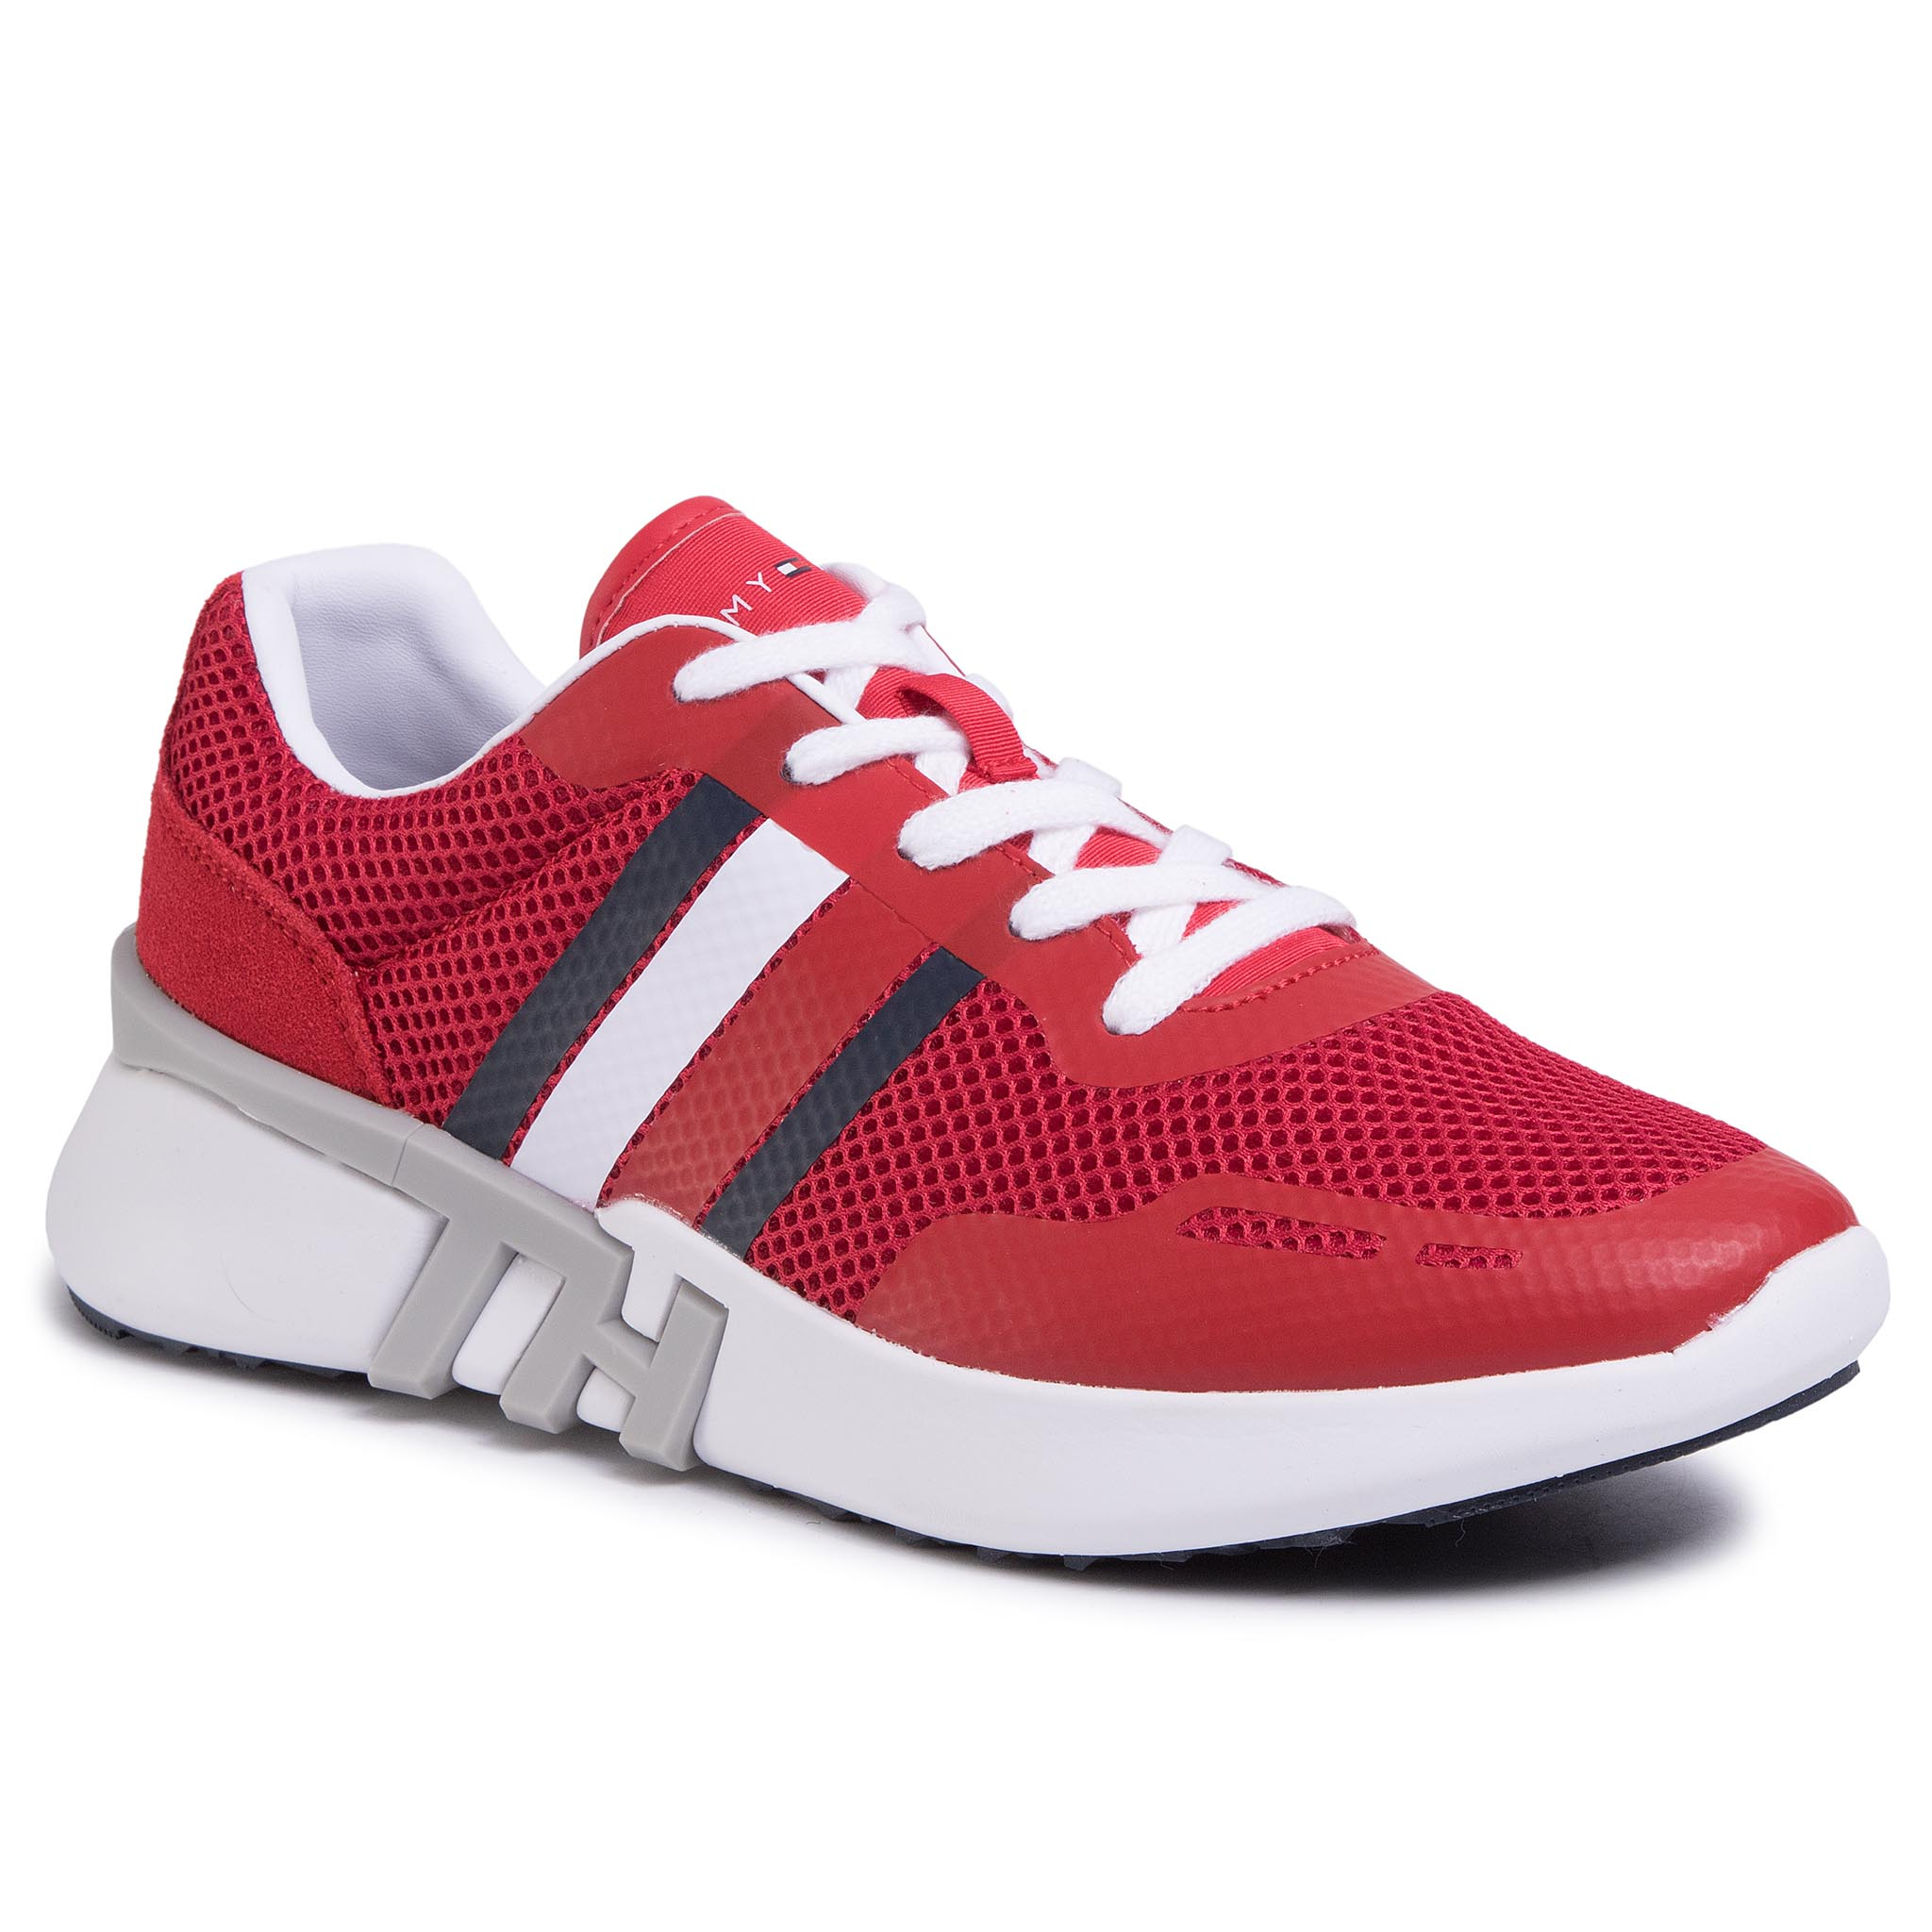 Sneakers TOMMY HILFIGER - Lightweight Crporate Th Runner FM0FM02661 Tango Red XCN